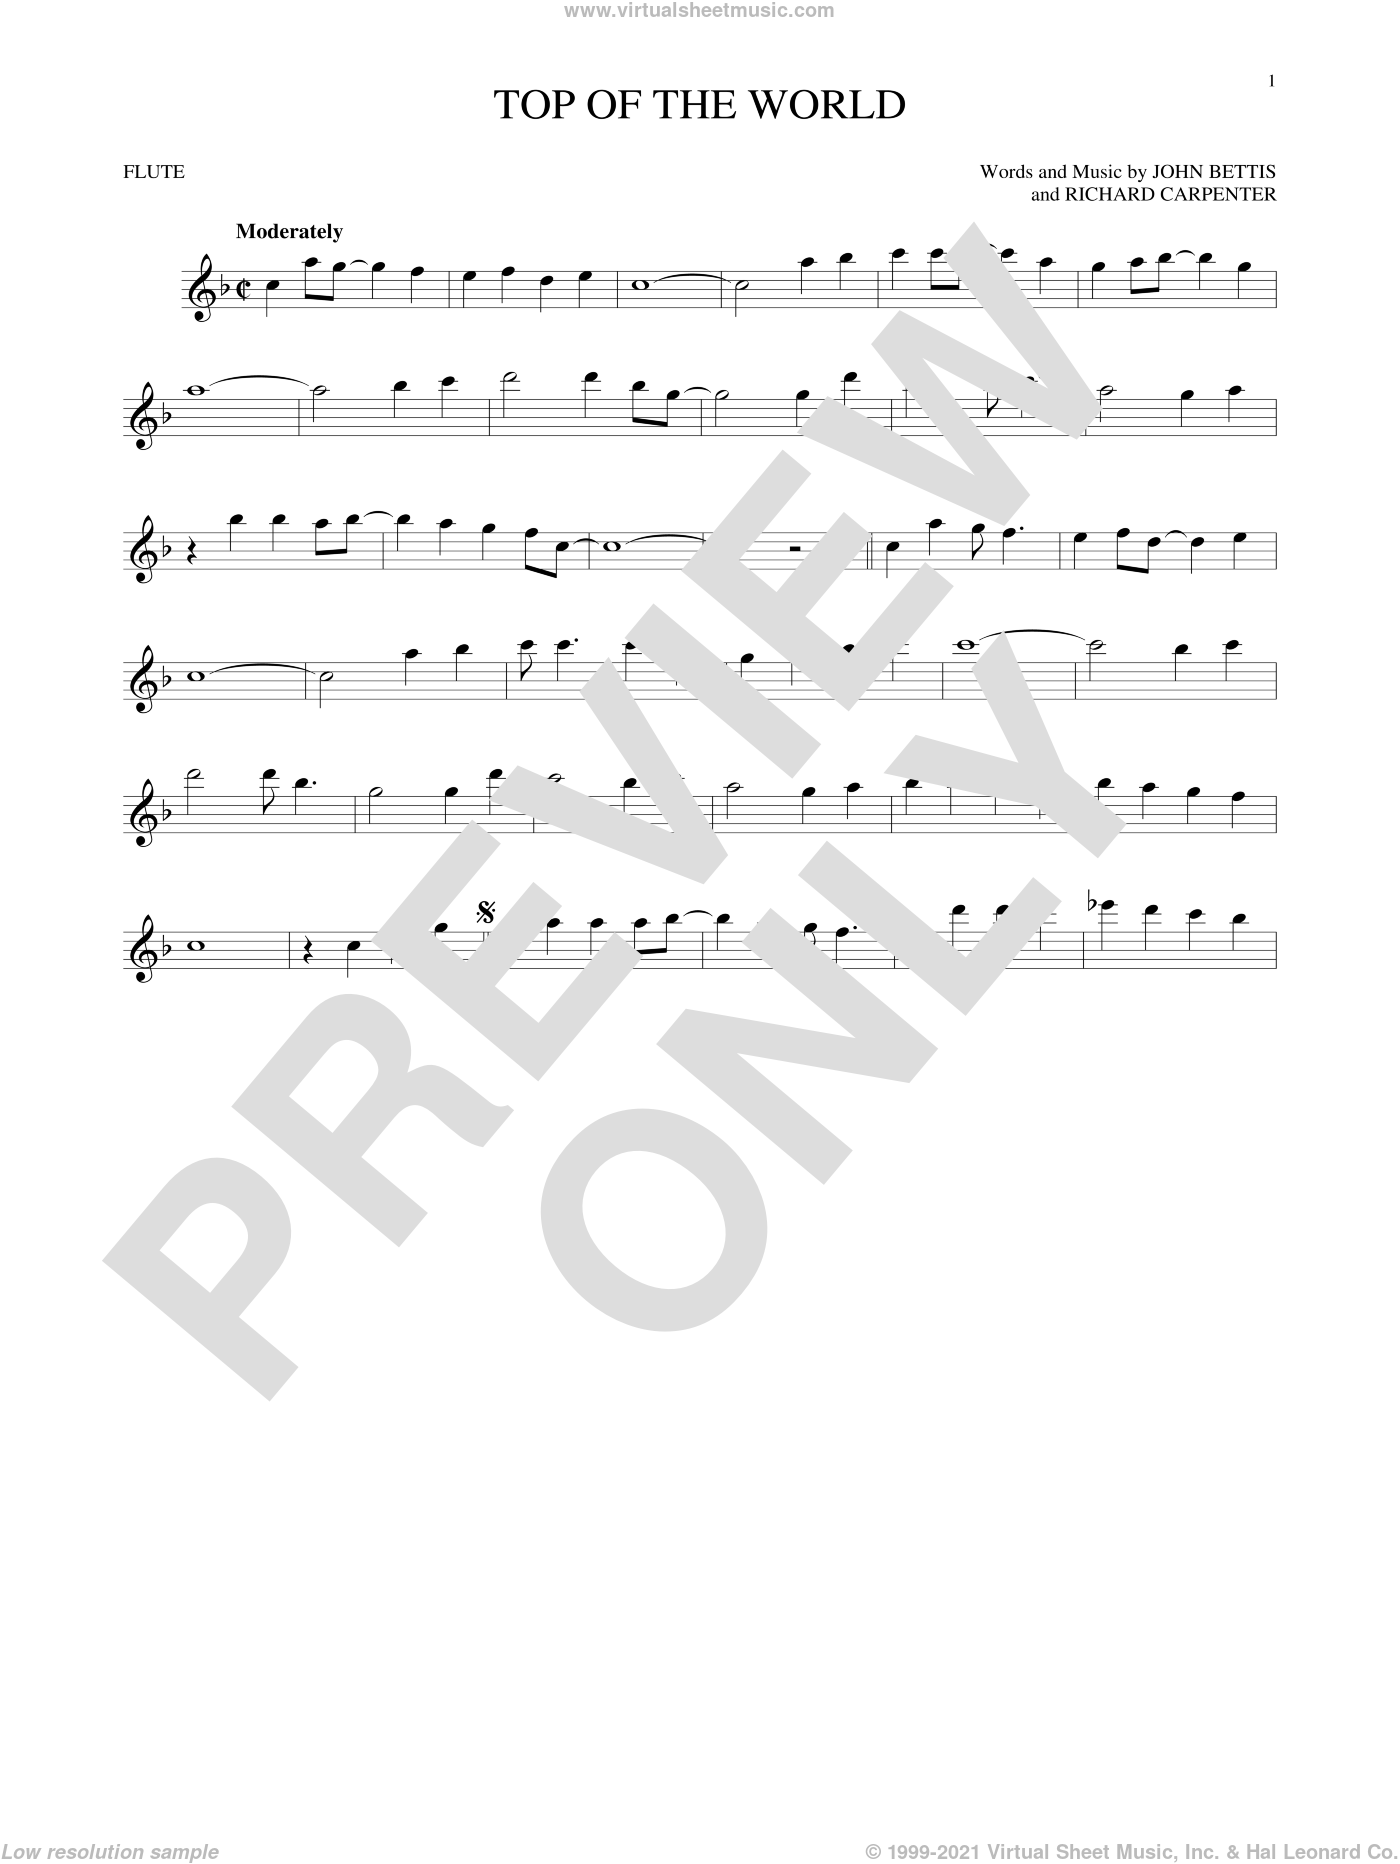 Top Of The World sheet music for flute solo by Richard Carpenter, Carpenters and John Bettis. Score Image Preview.